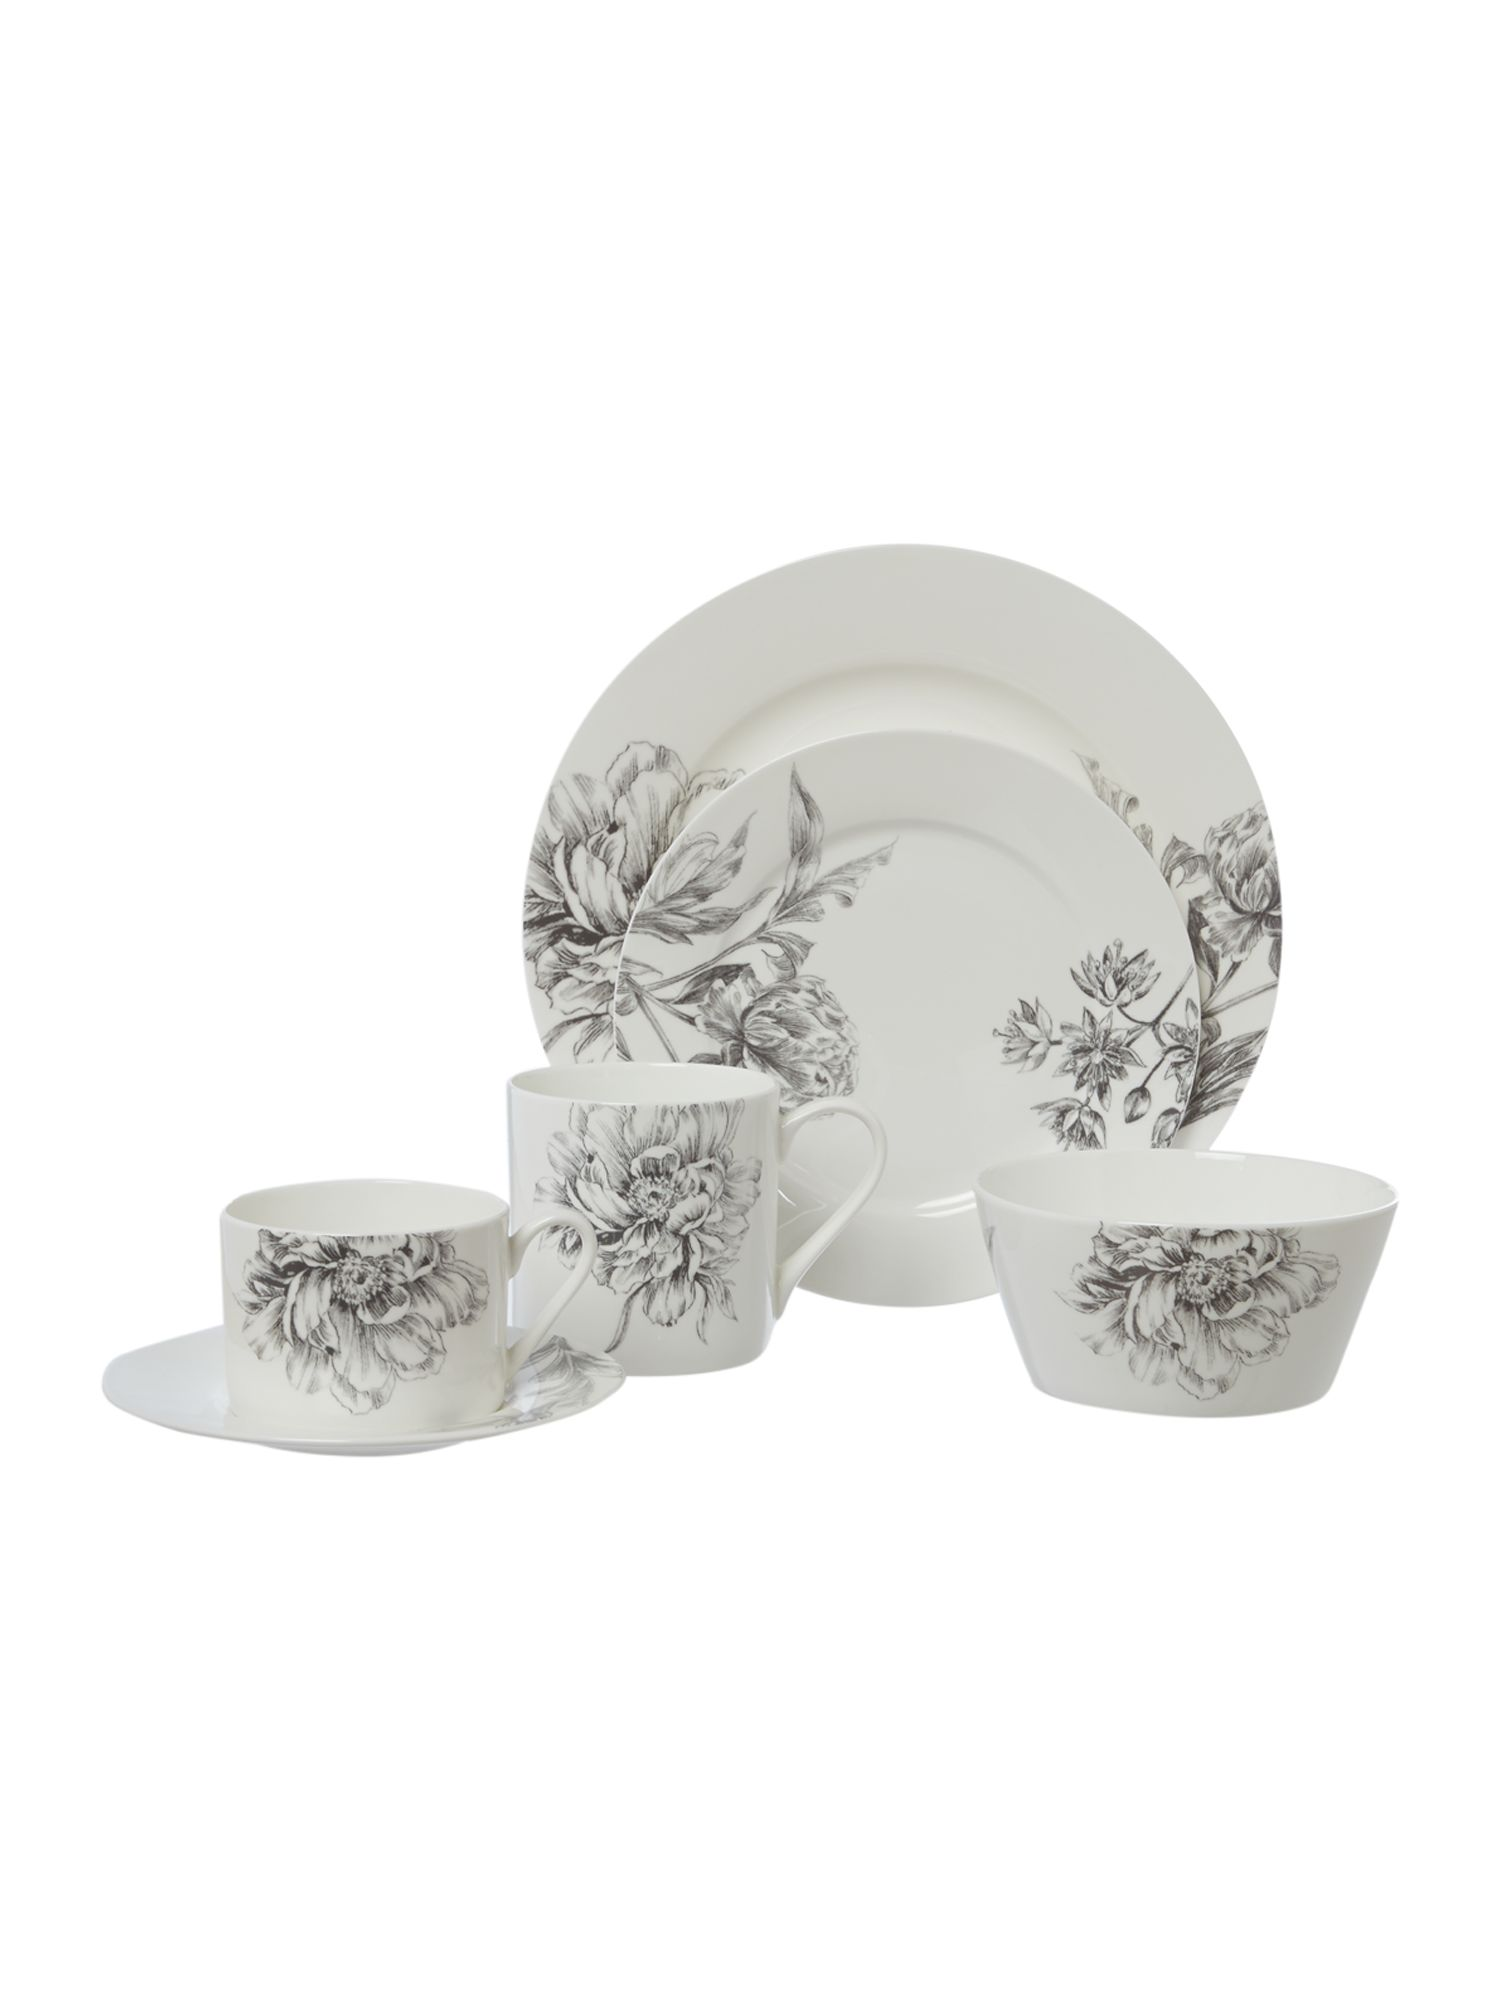 Winterbloom Bone China Dinnerware Range